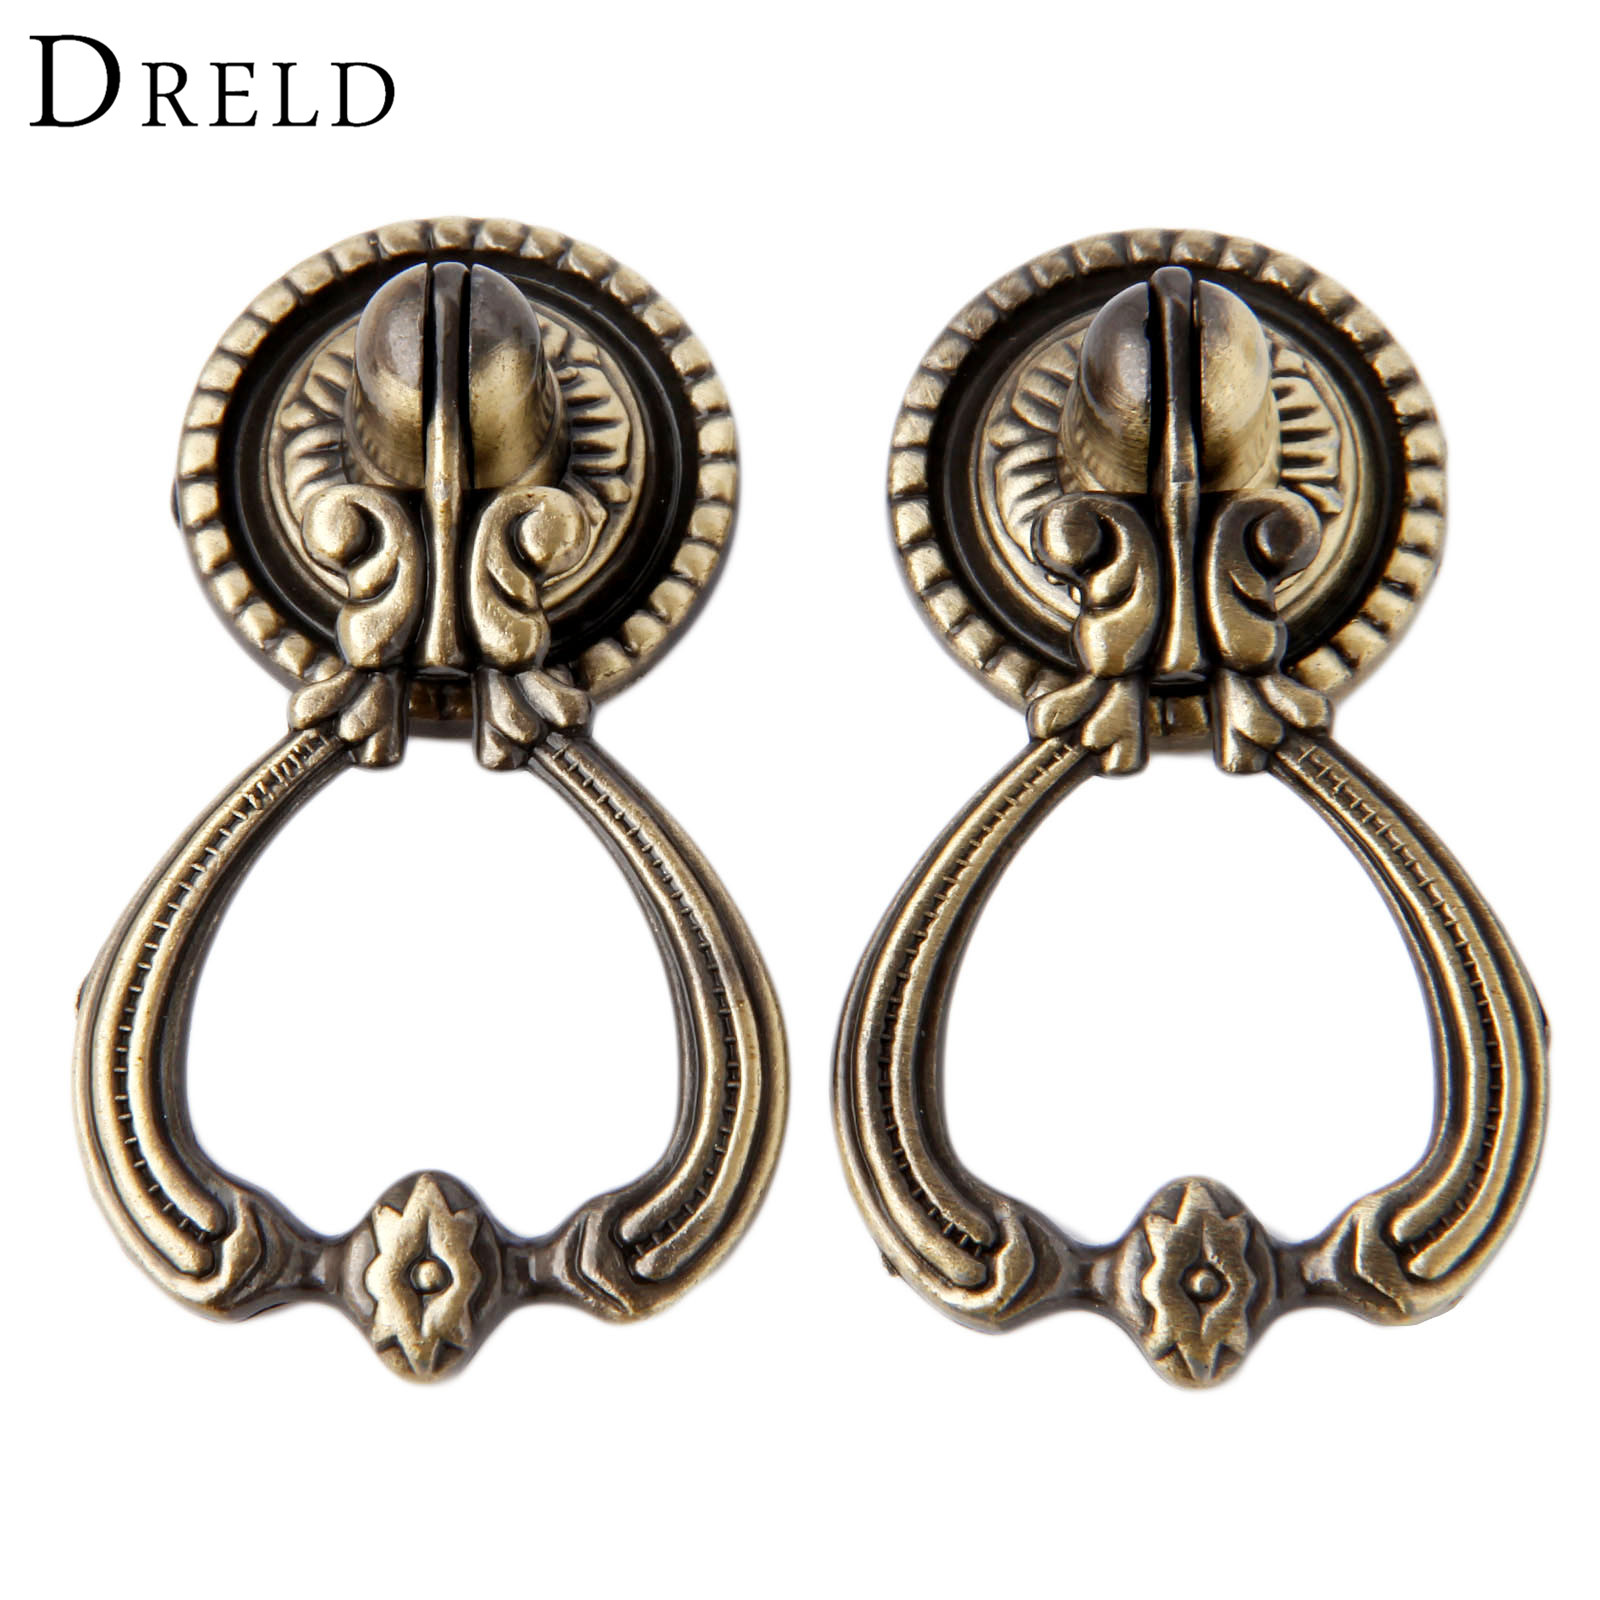 DRELD 2Pcs Antique Brass Furniture Handles Vintage Cabinet Knobs and Handles Door Closet Cabinet Drawer Pull Handle for Kitchen children soft plastic environmental protection furniture handle carton vegetable knobs for closet drawer shoes cabinet